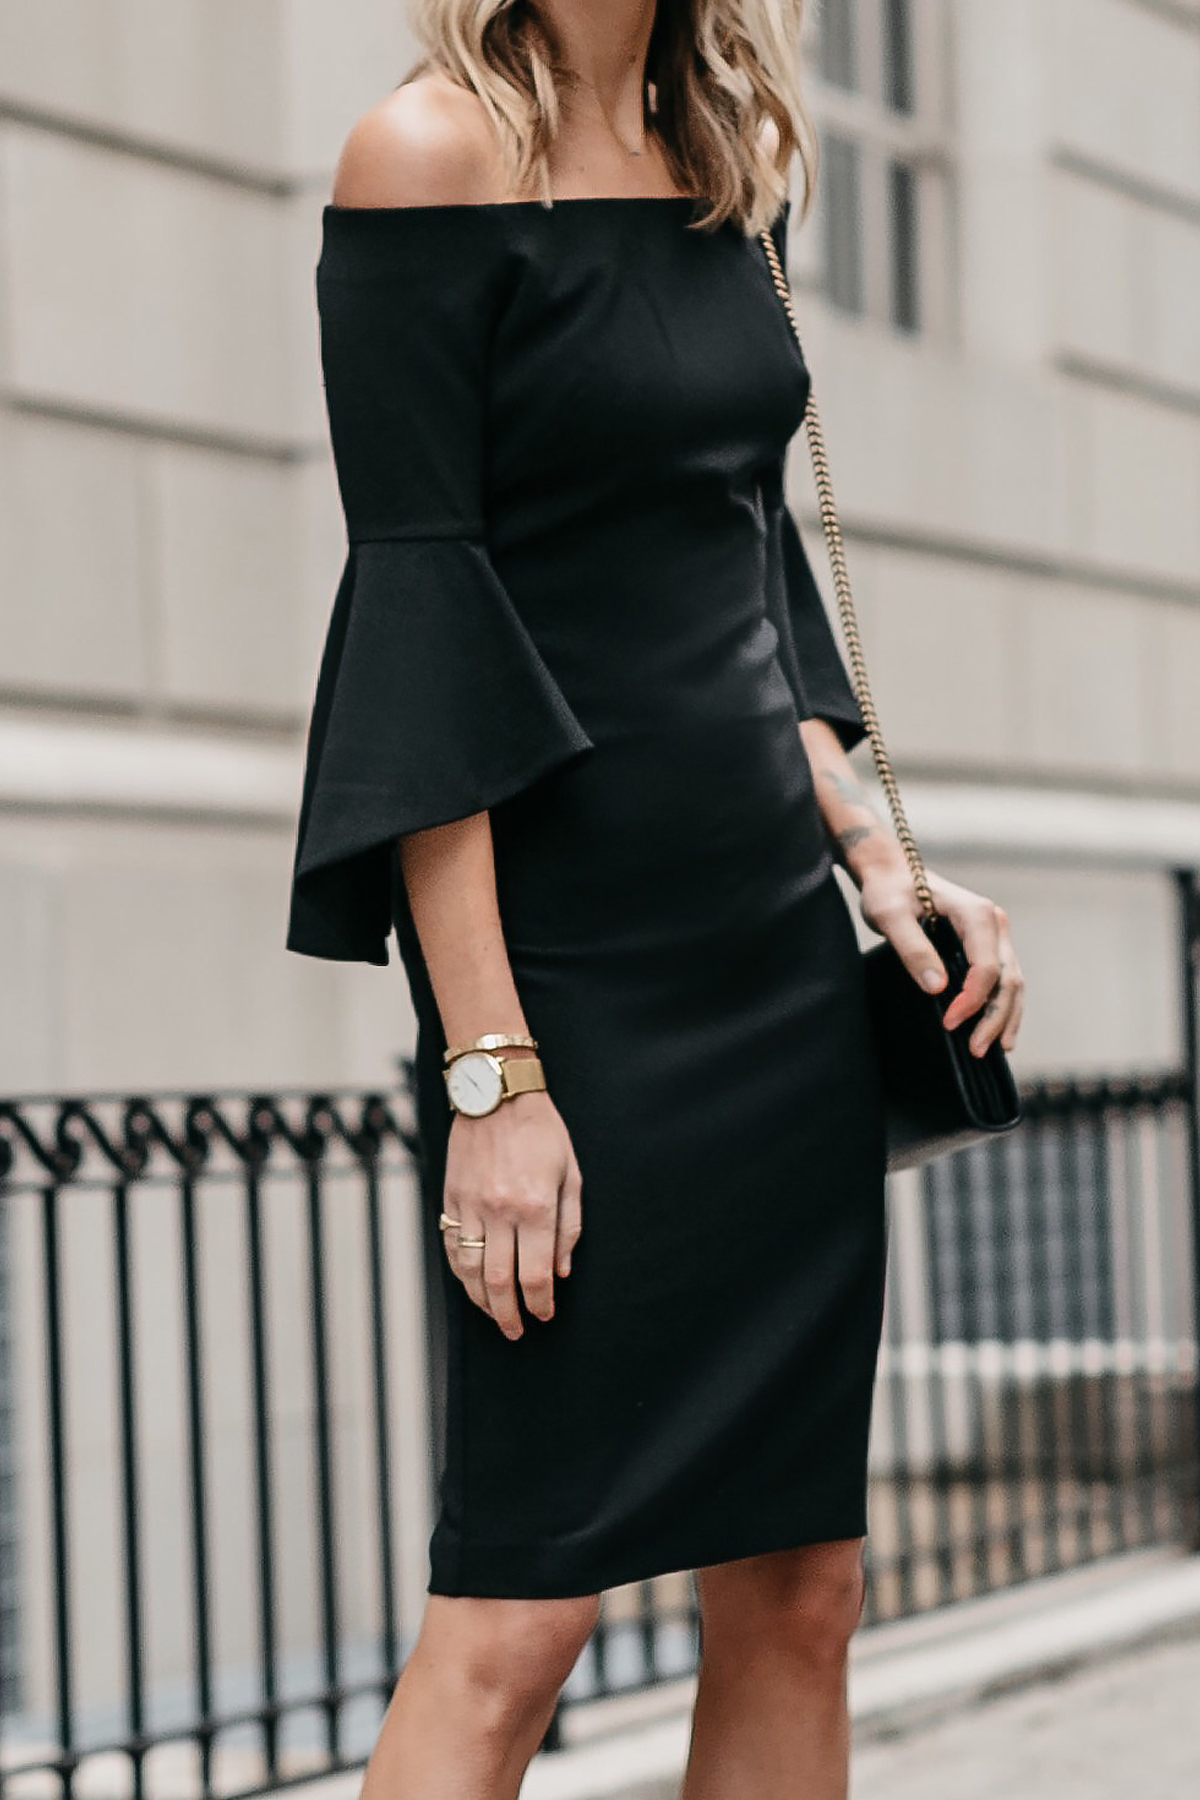 Off-the-Shoulder Black Holiday Dress Fashion Jackson Dallas Blogger Fashion Blogger Street Style